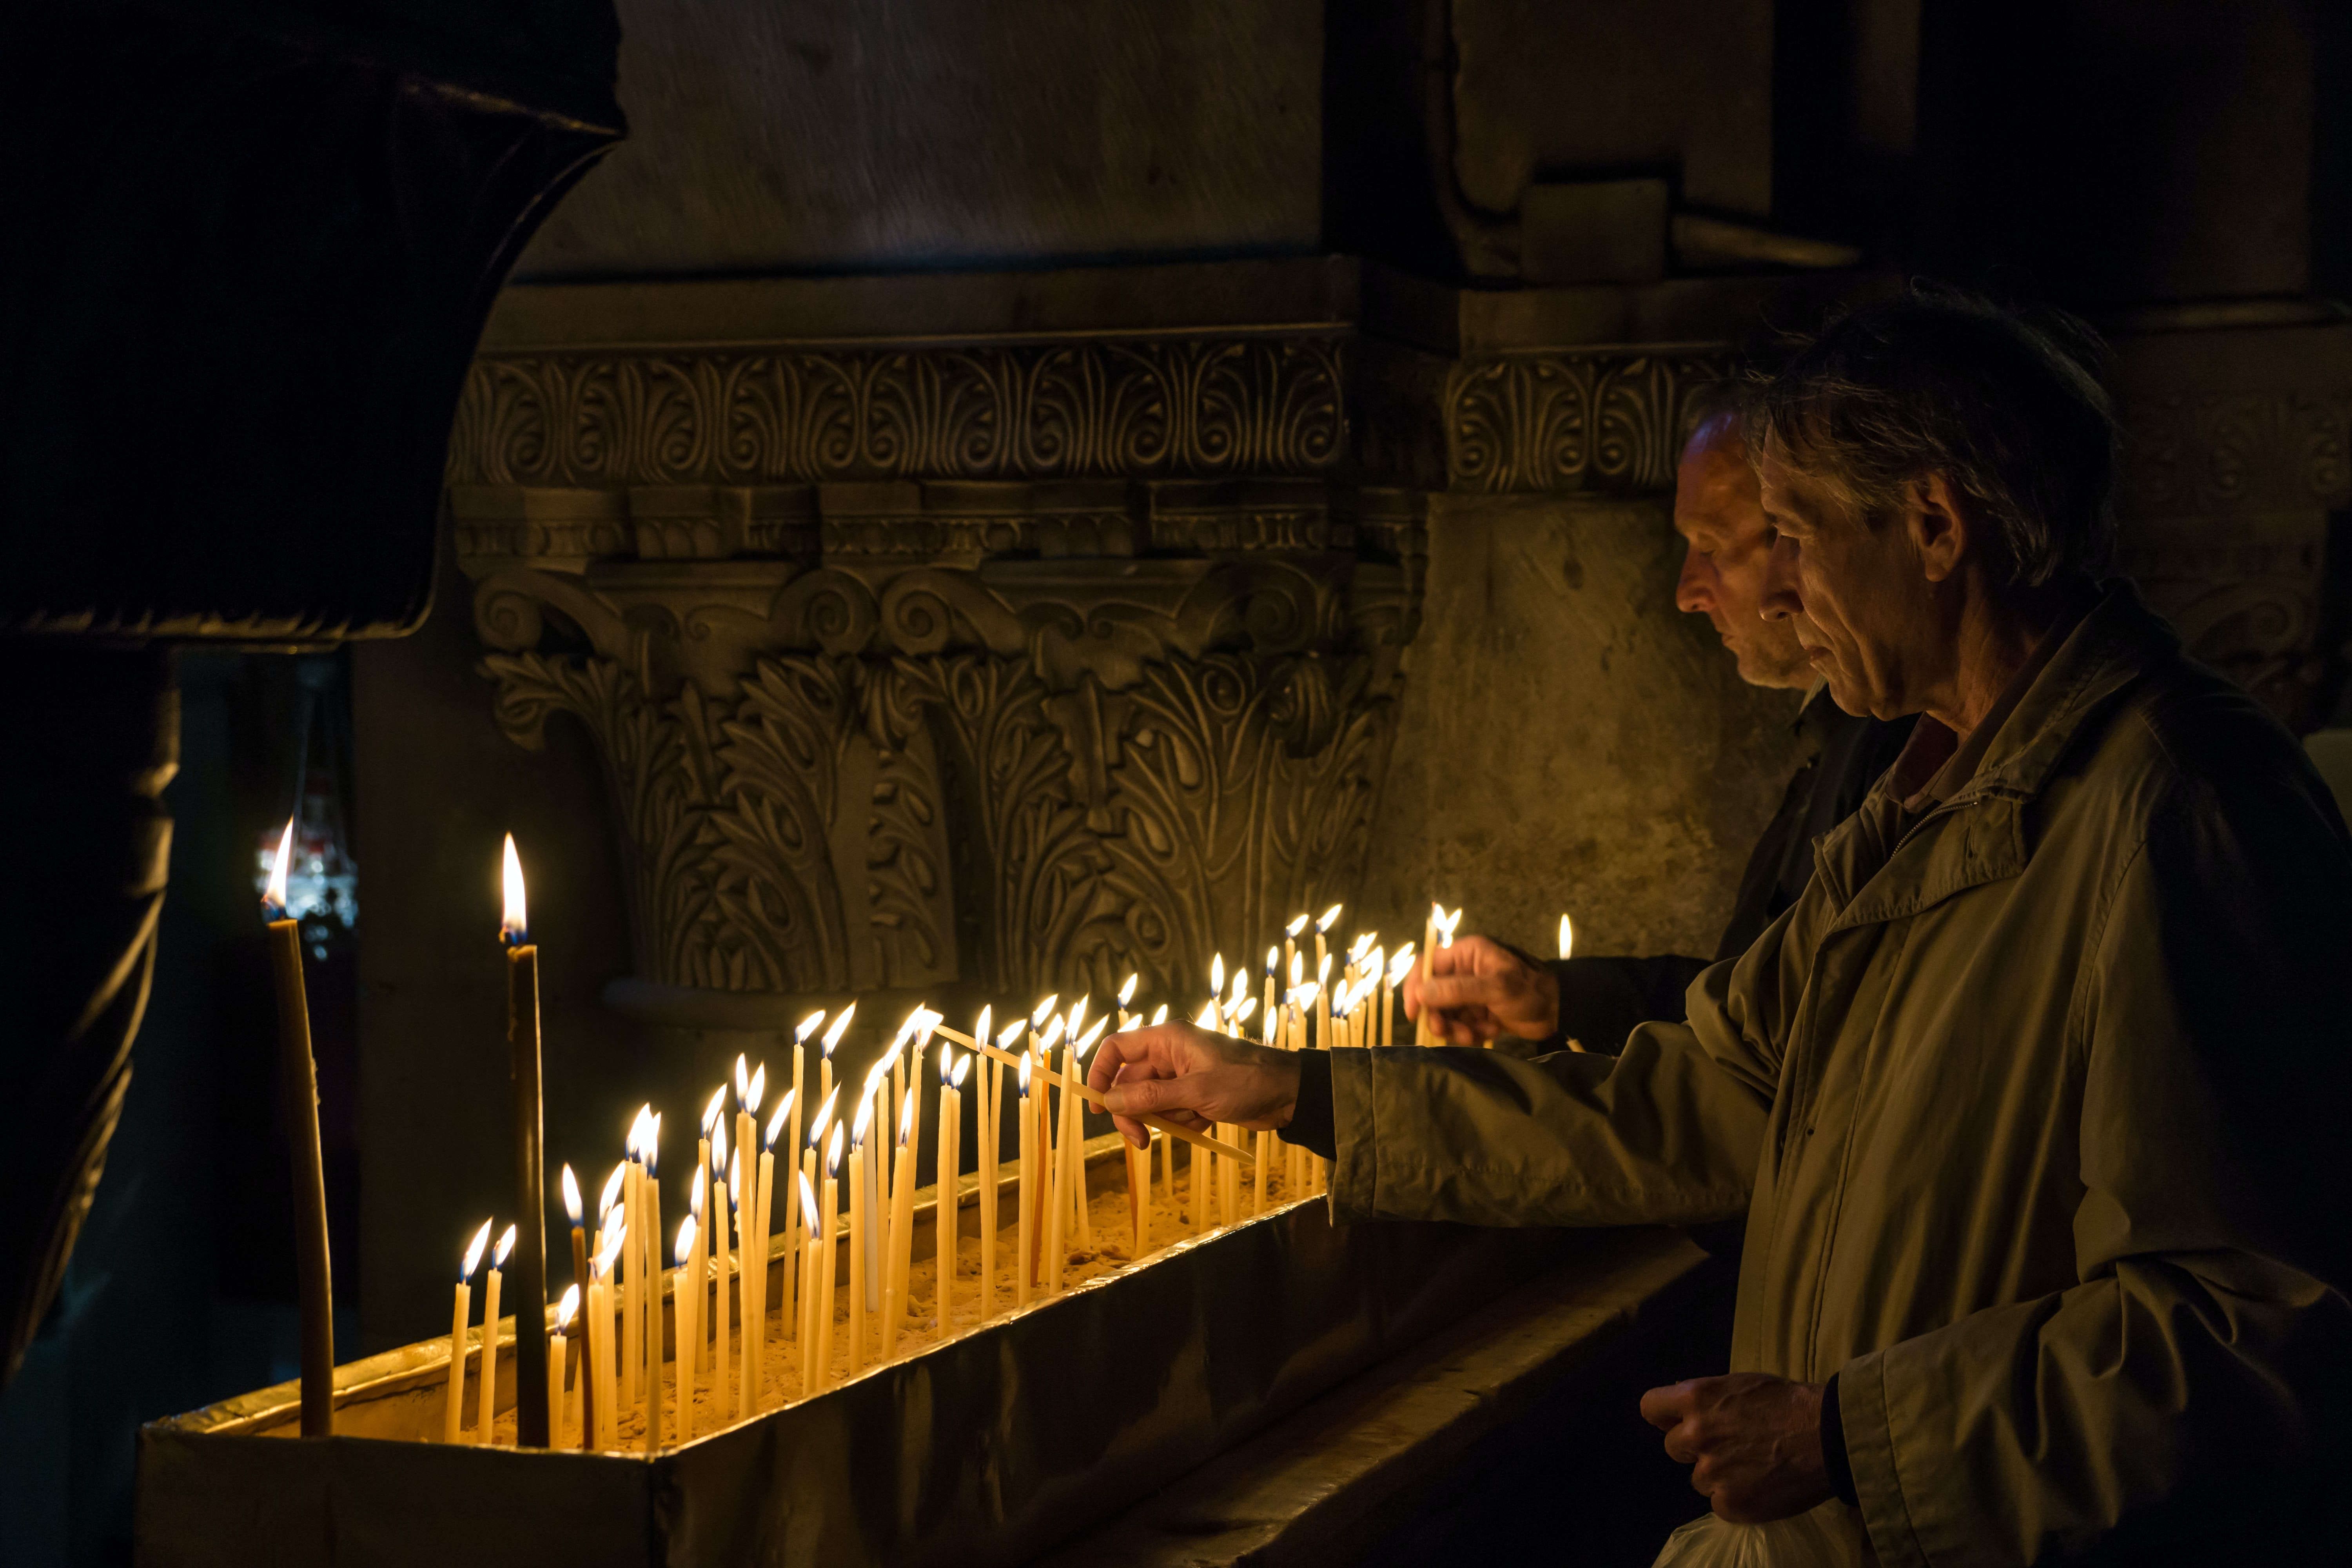 priest lighting up candles